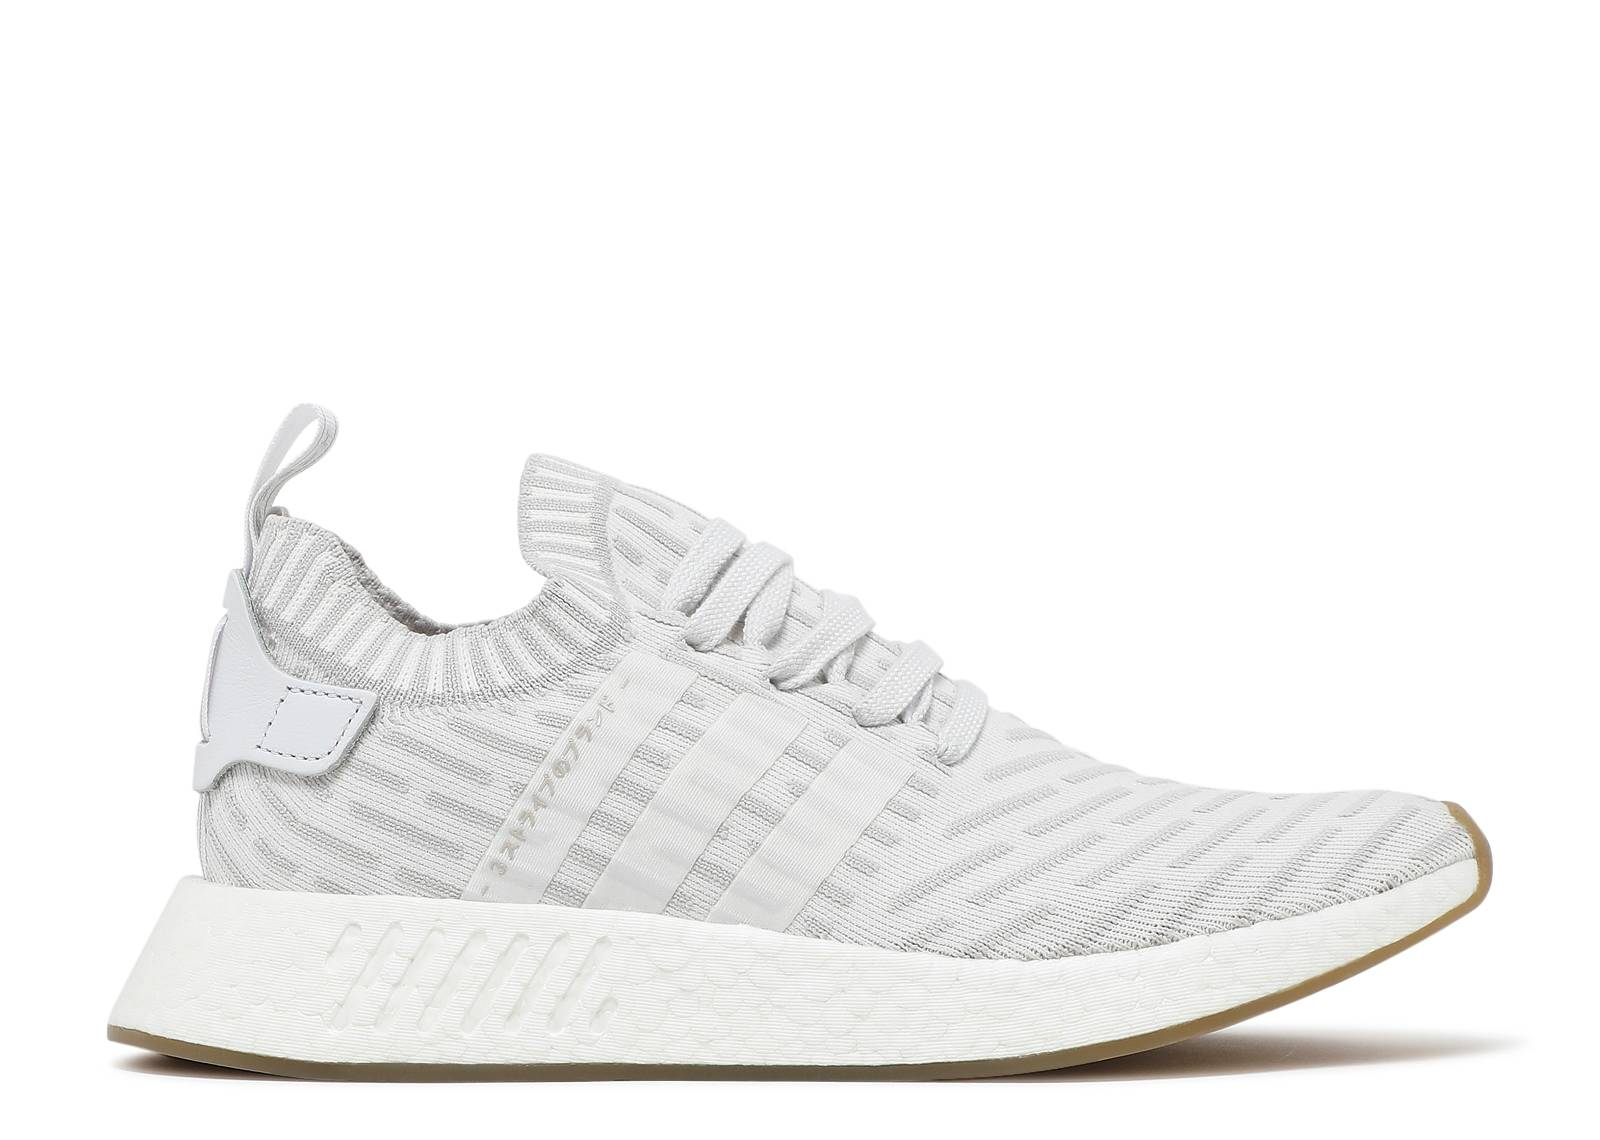 Cheap NMD Japan Pack